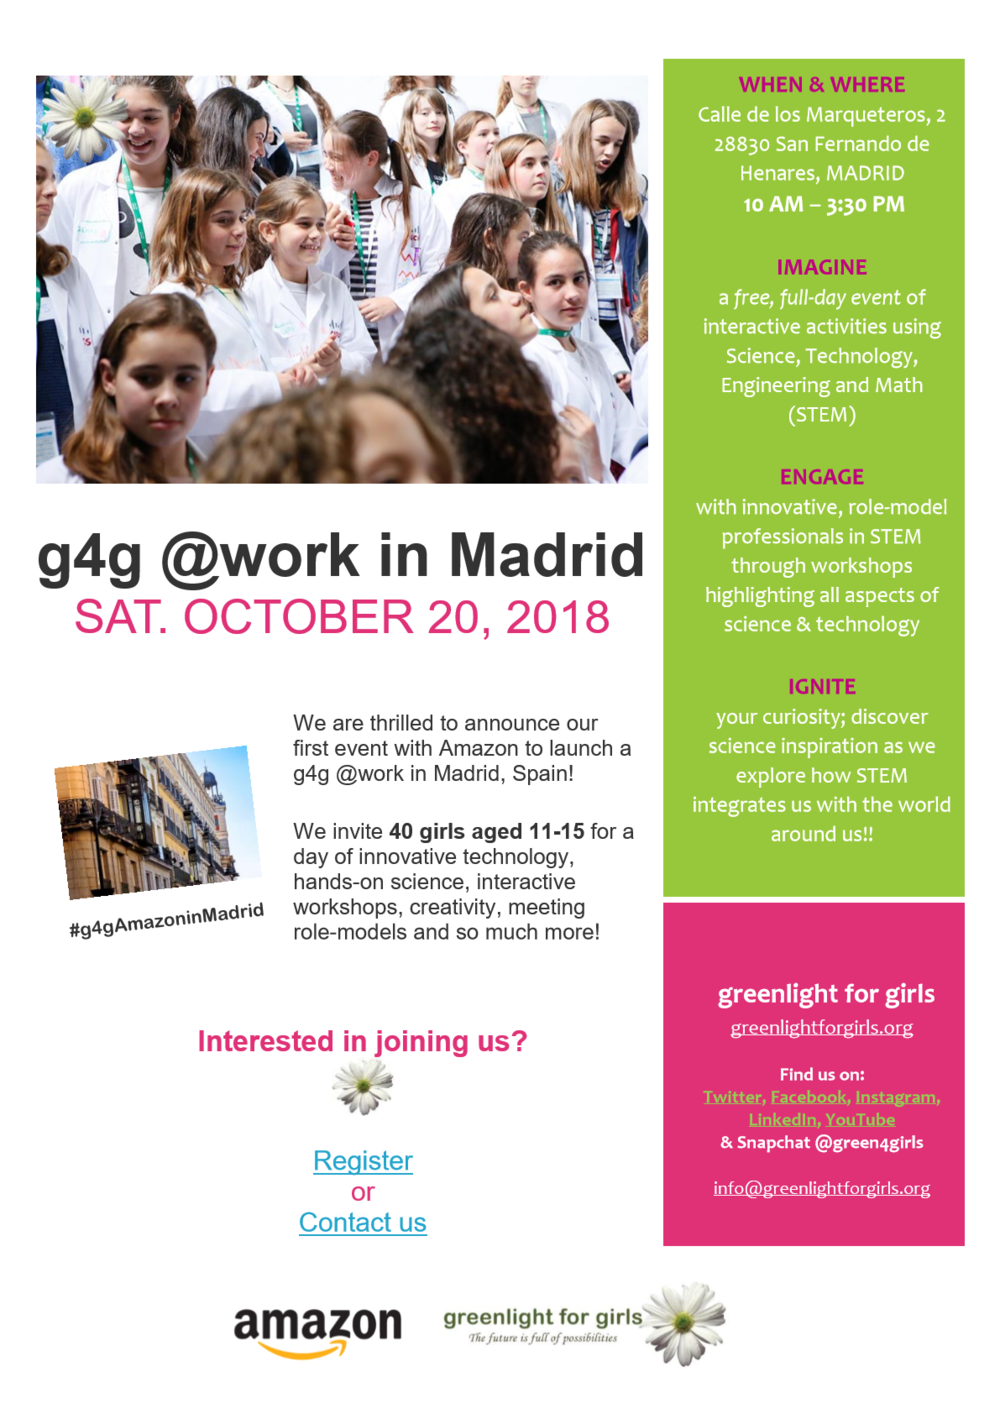 g4gatwork_Madrid2018_english.jpg